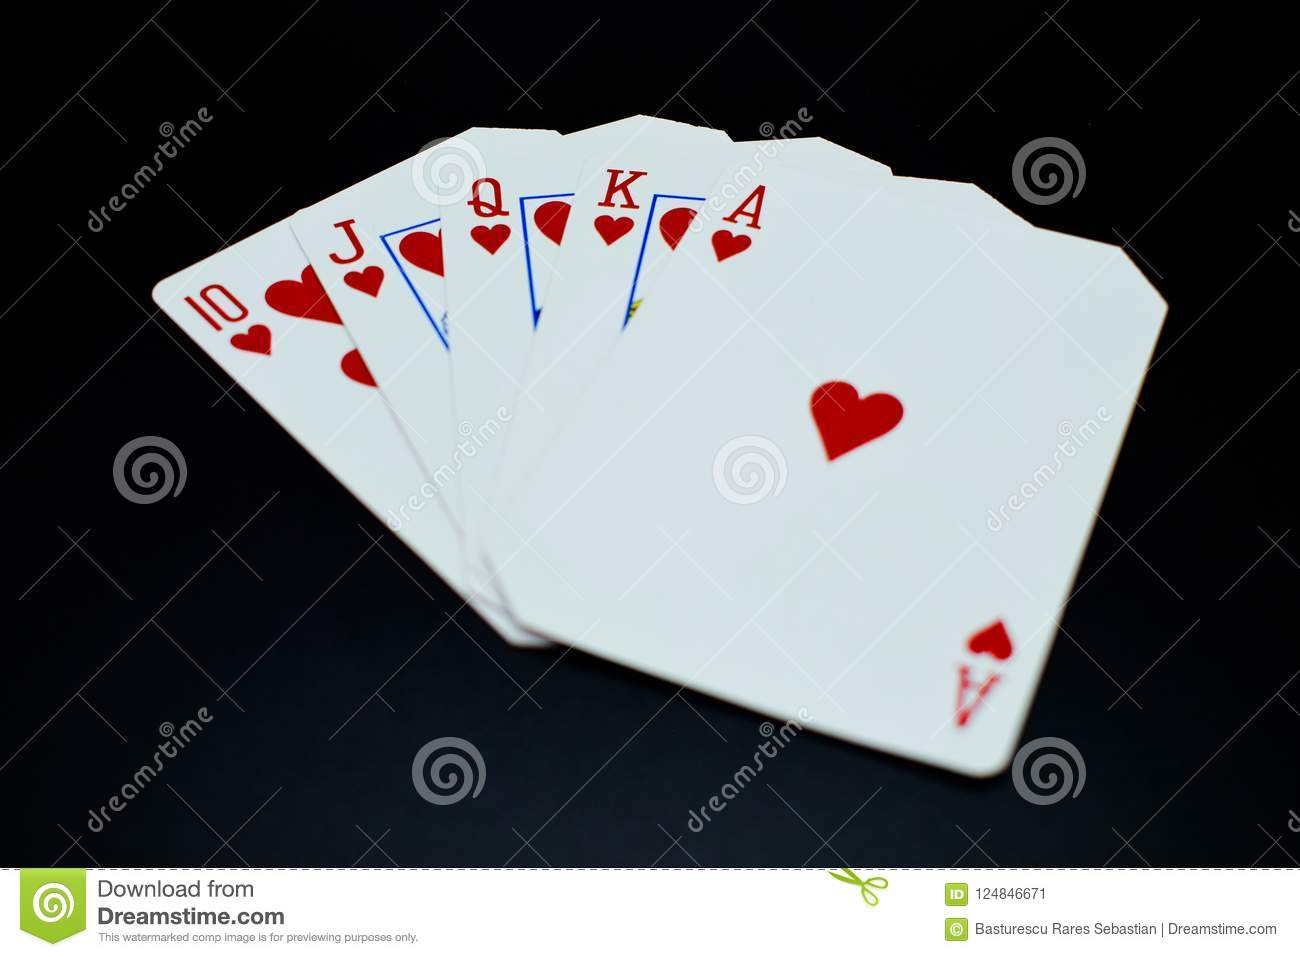 Poker royal flush embroidery design machine instant download.